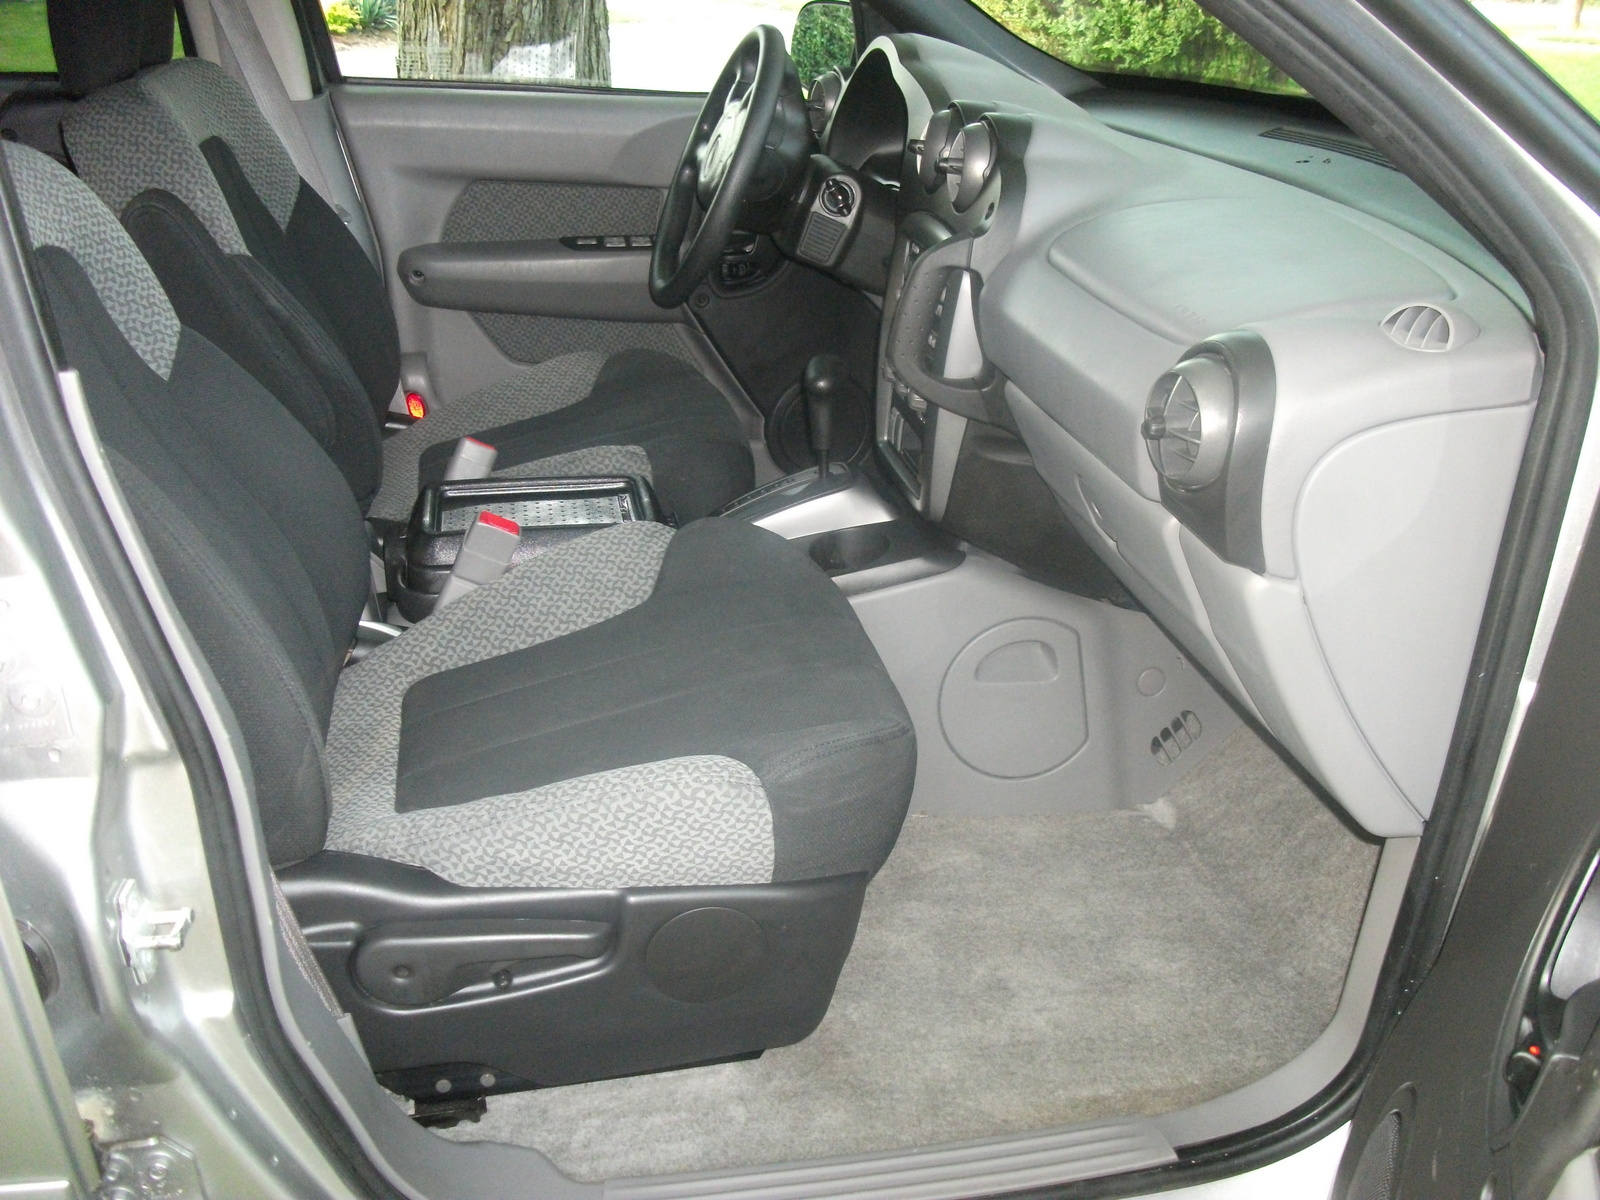 2005 pontiac aztek interior pictures cargurus. Black Bedroom Furniture Sets. Home Design Ideas